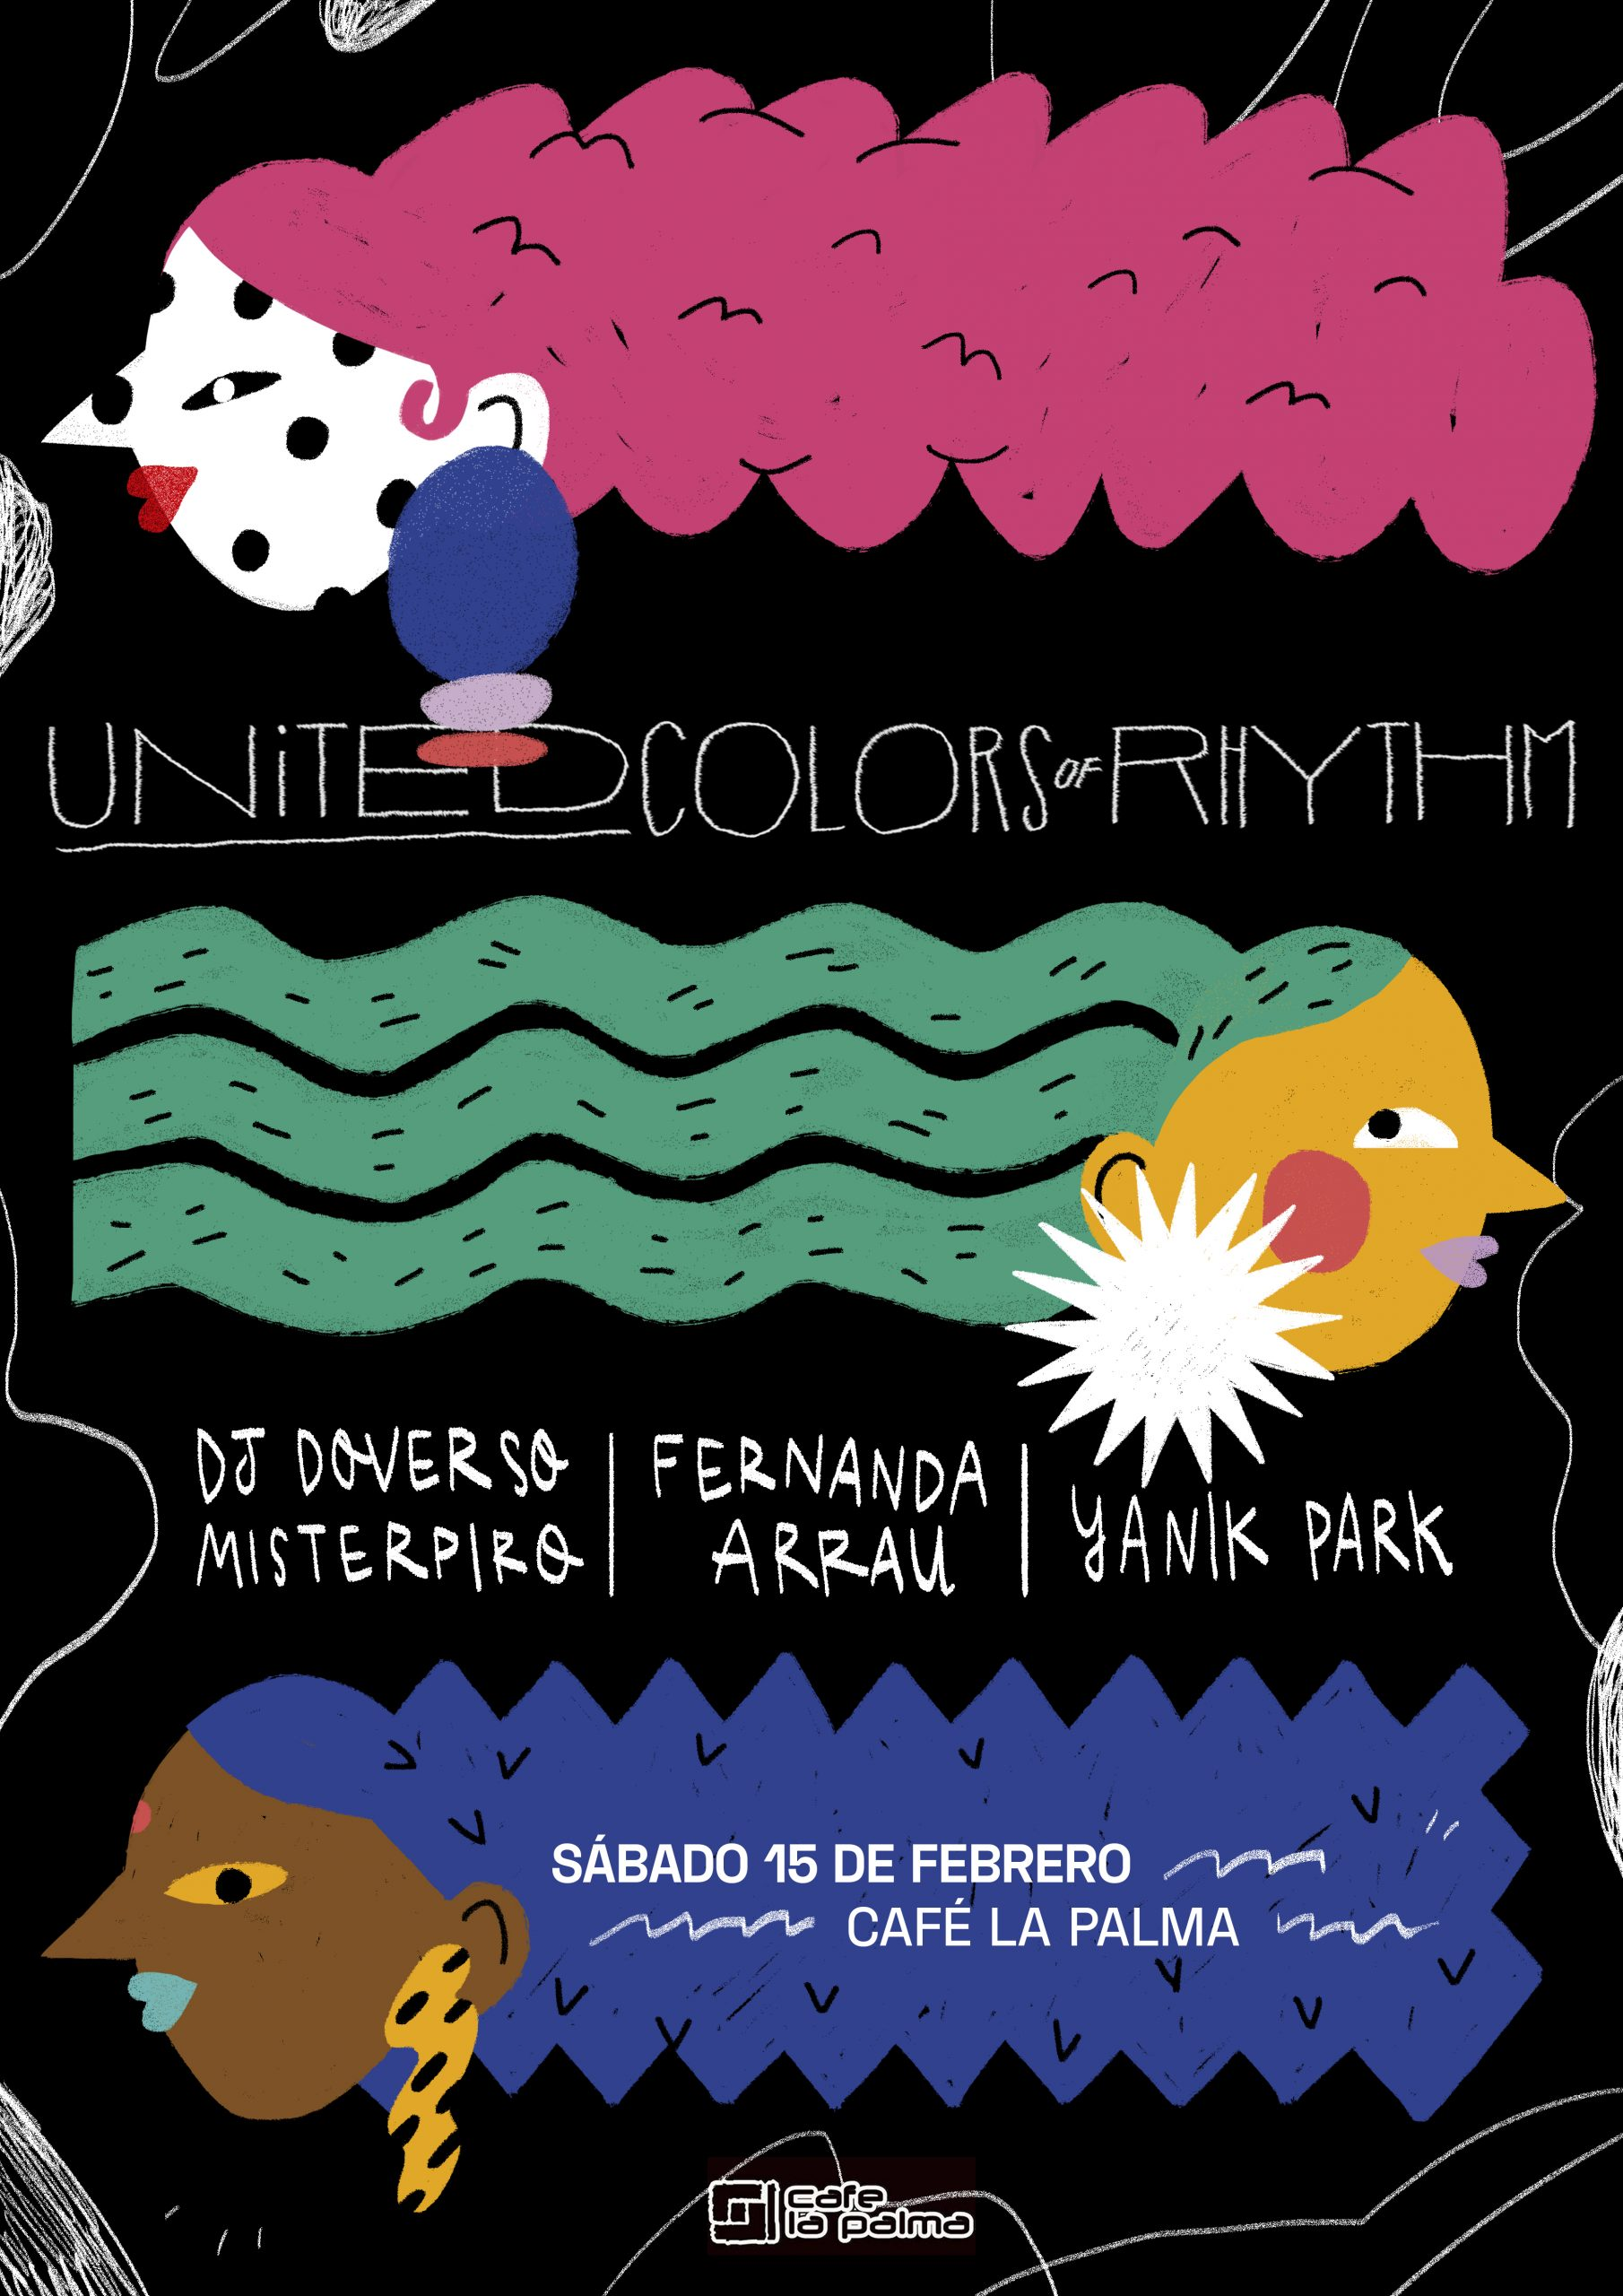 United Colors of Rhythm En Café La Palma